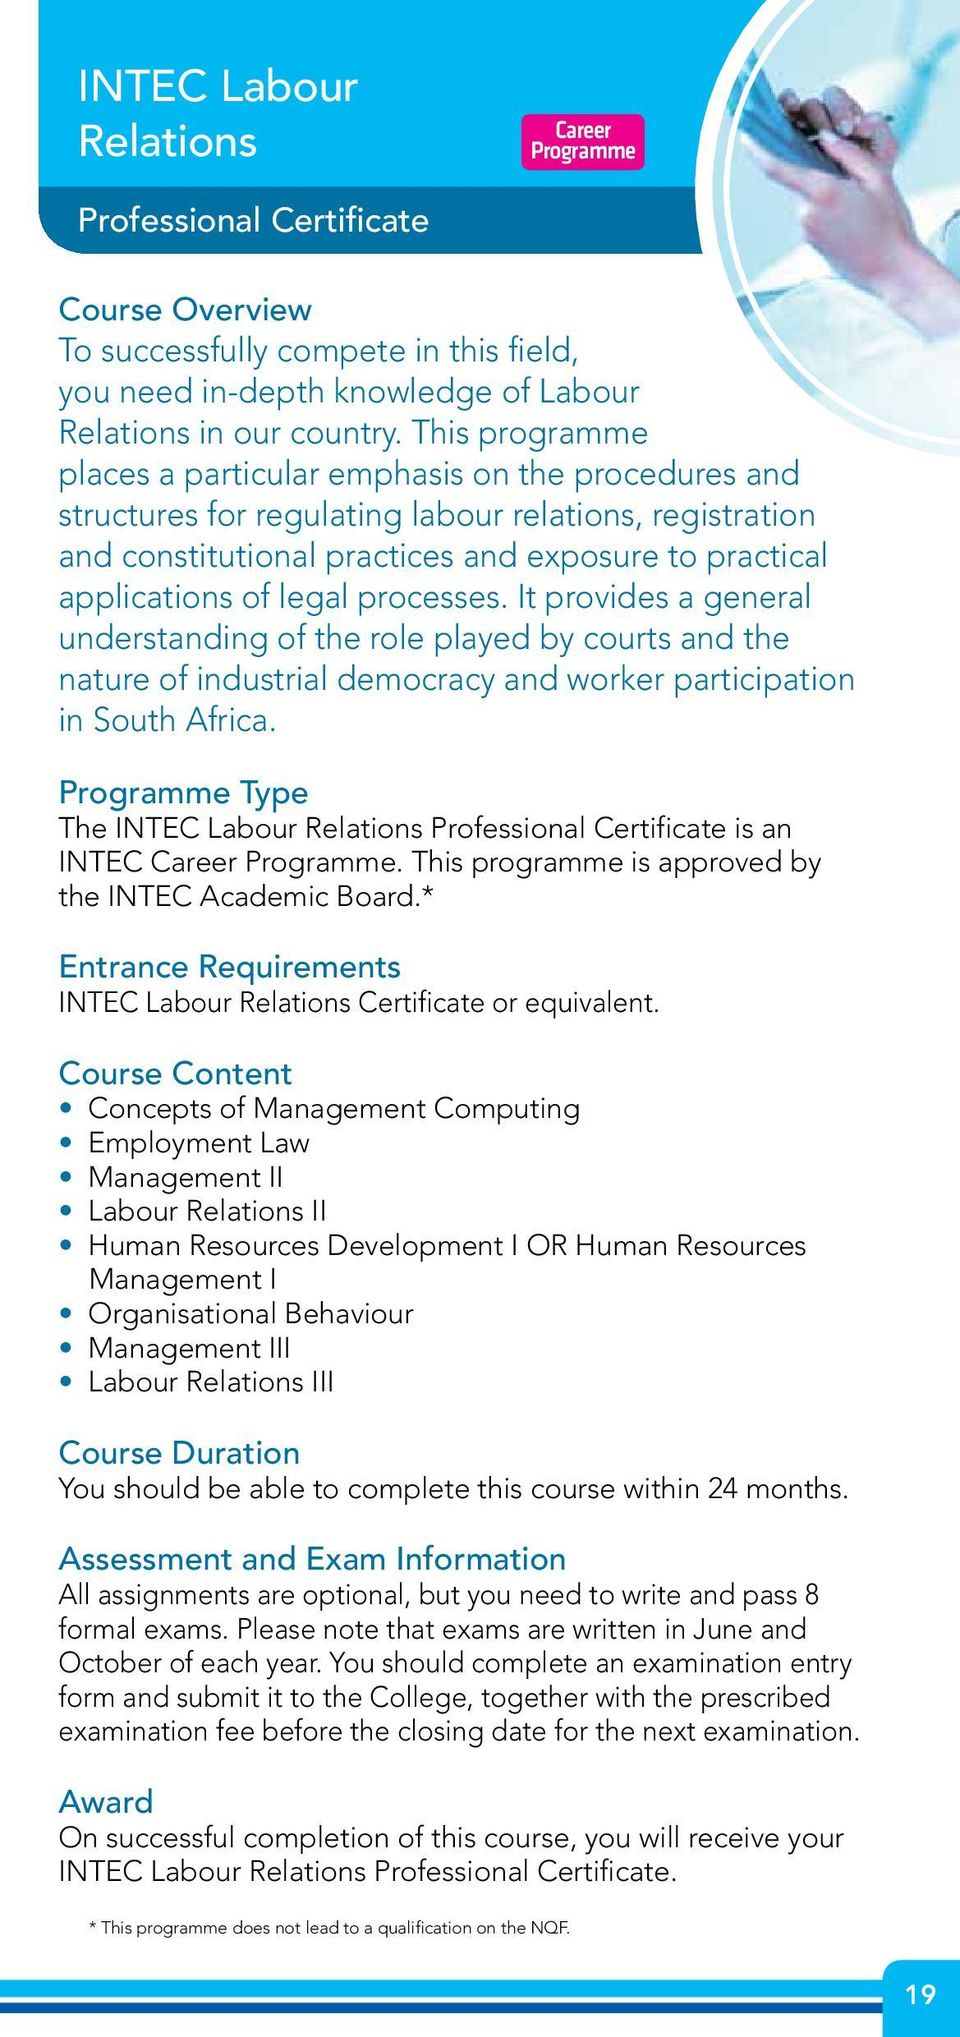 processes. It provides a general understanding of the role played by courts and the nature of industrial democracy and worker participation in South Africa.